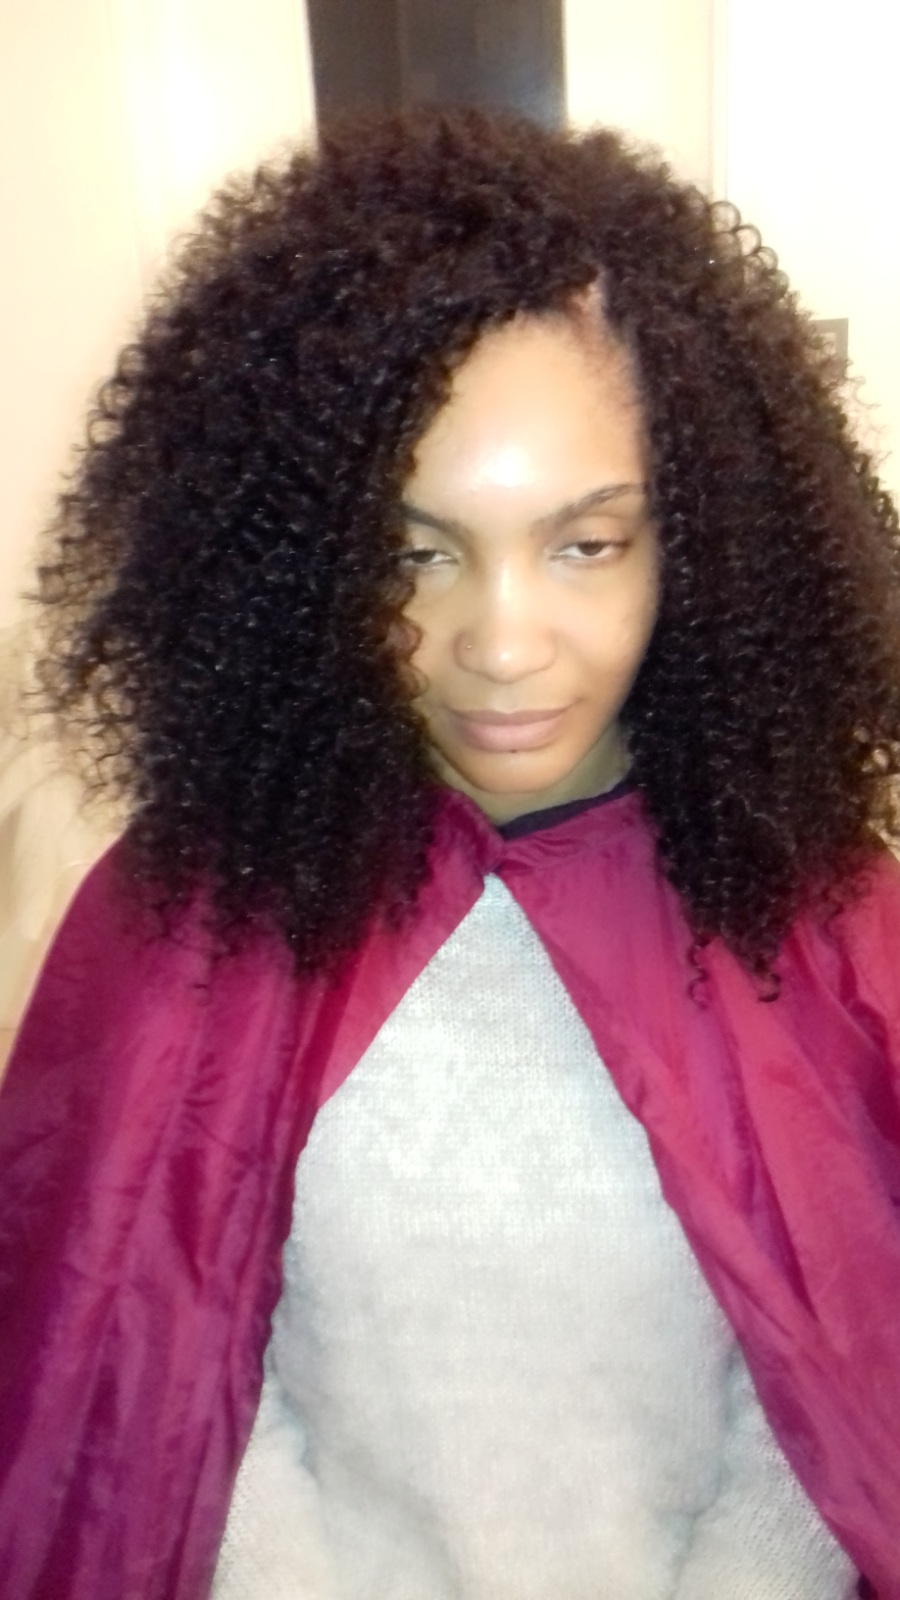 salon de coiffure afro tresse tresses box braids crochet braids vanilles tissages paris 75 77 78 91 92 93 94 95 XQPRWKOA